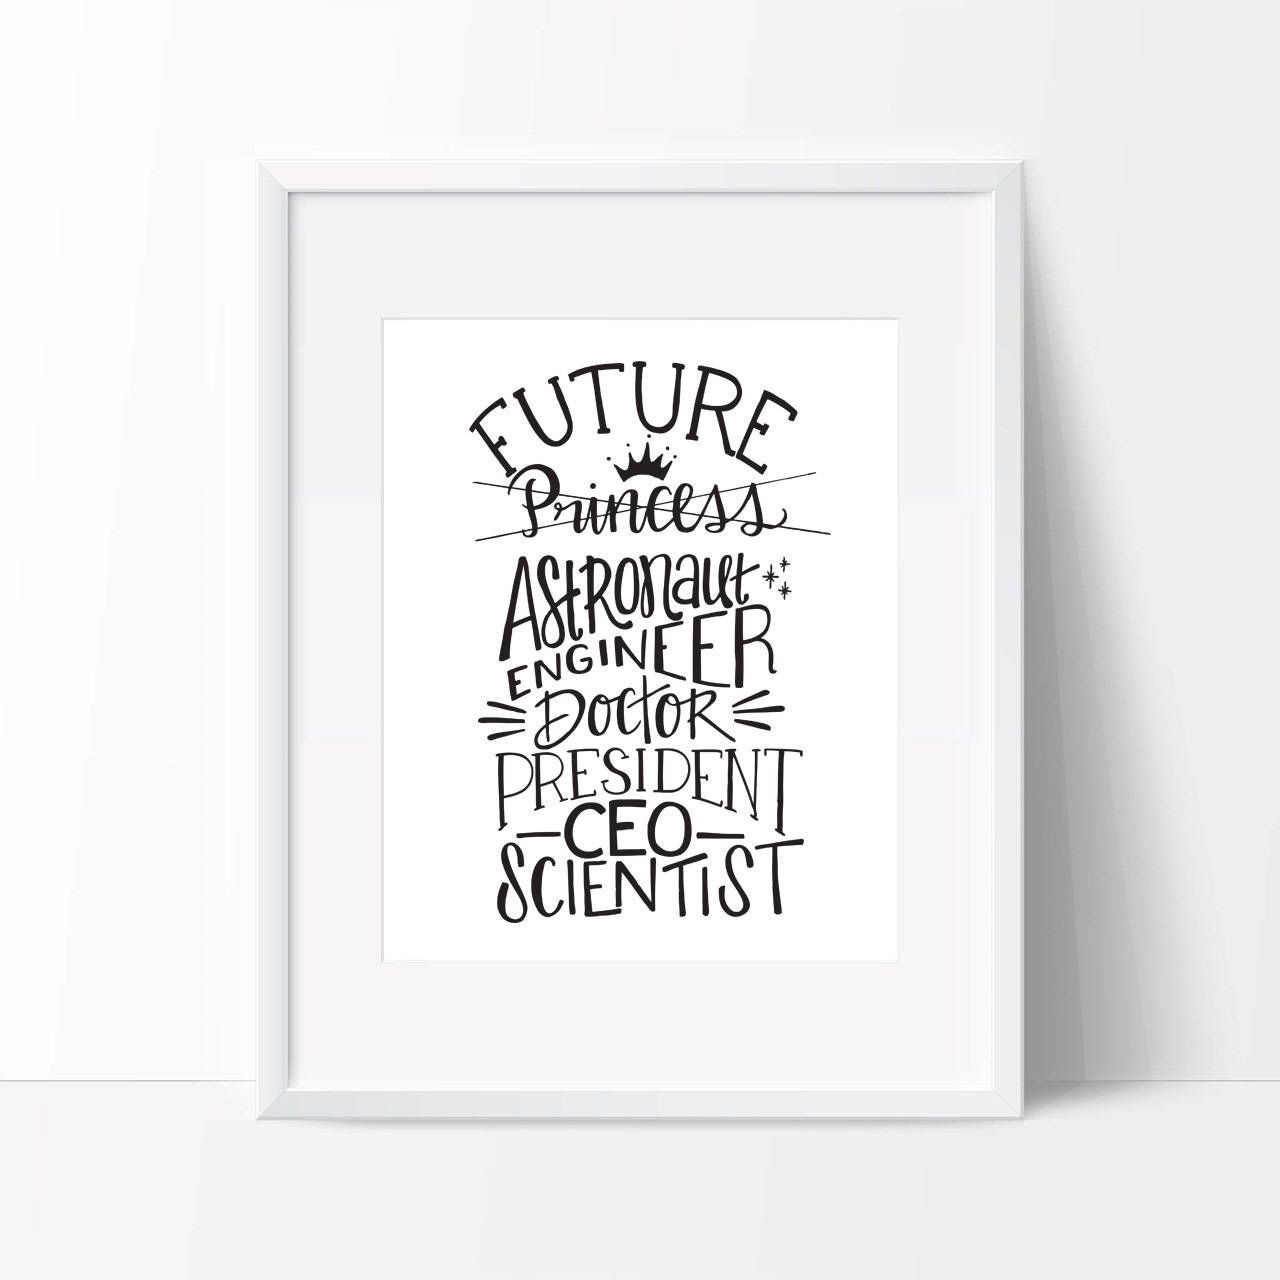 Nursery Print, Feminist Print, Feminist Art, Art Print, Girls Room, Baby Shower Gift, Future Preside images